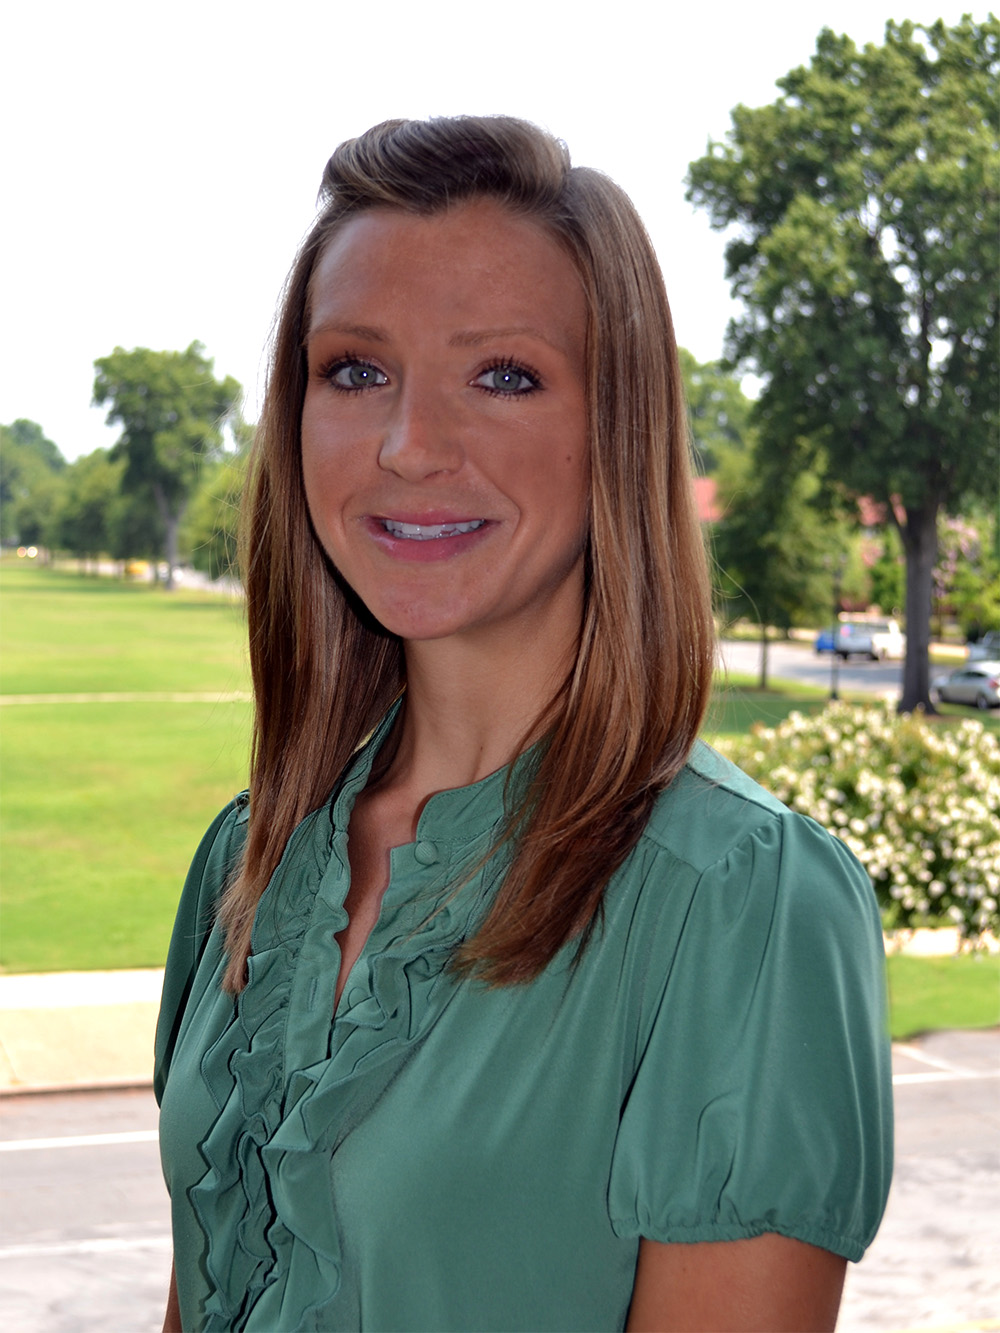 Delta State names Caitlyn Thompson as Coordinator of Communications and Marketing.